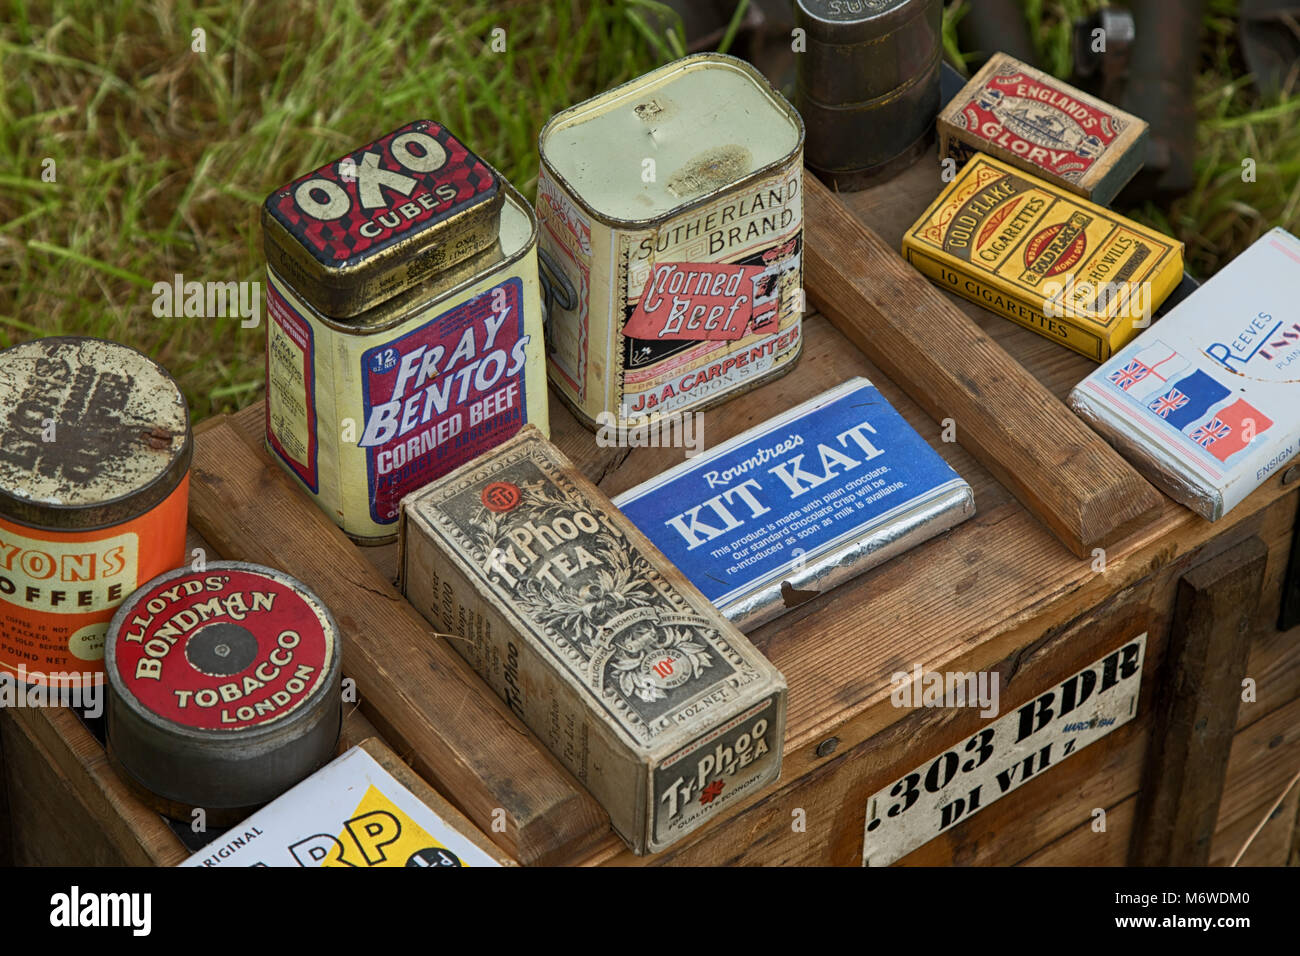 Display of wartime food supplies and confectionary. - Stock Image